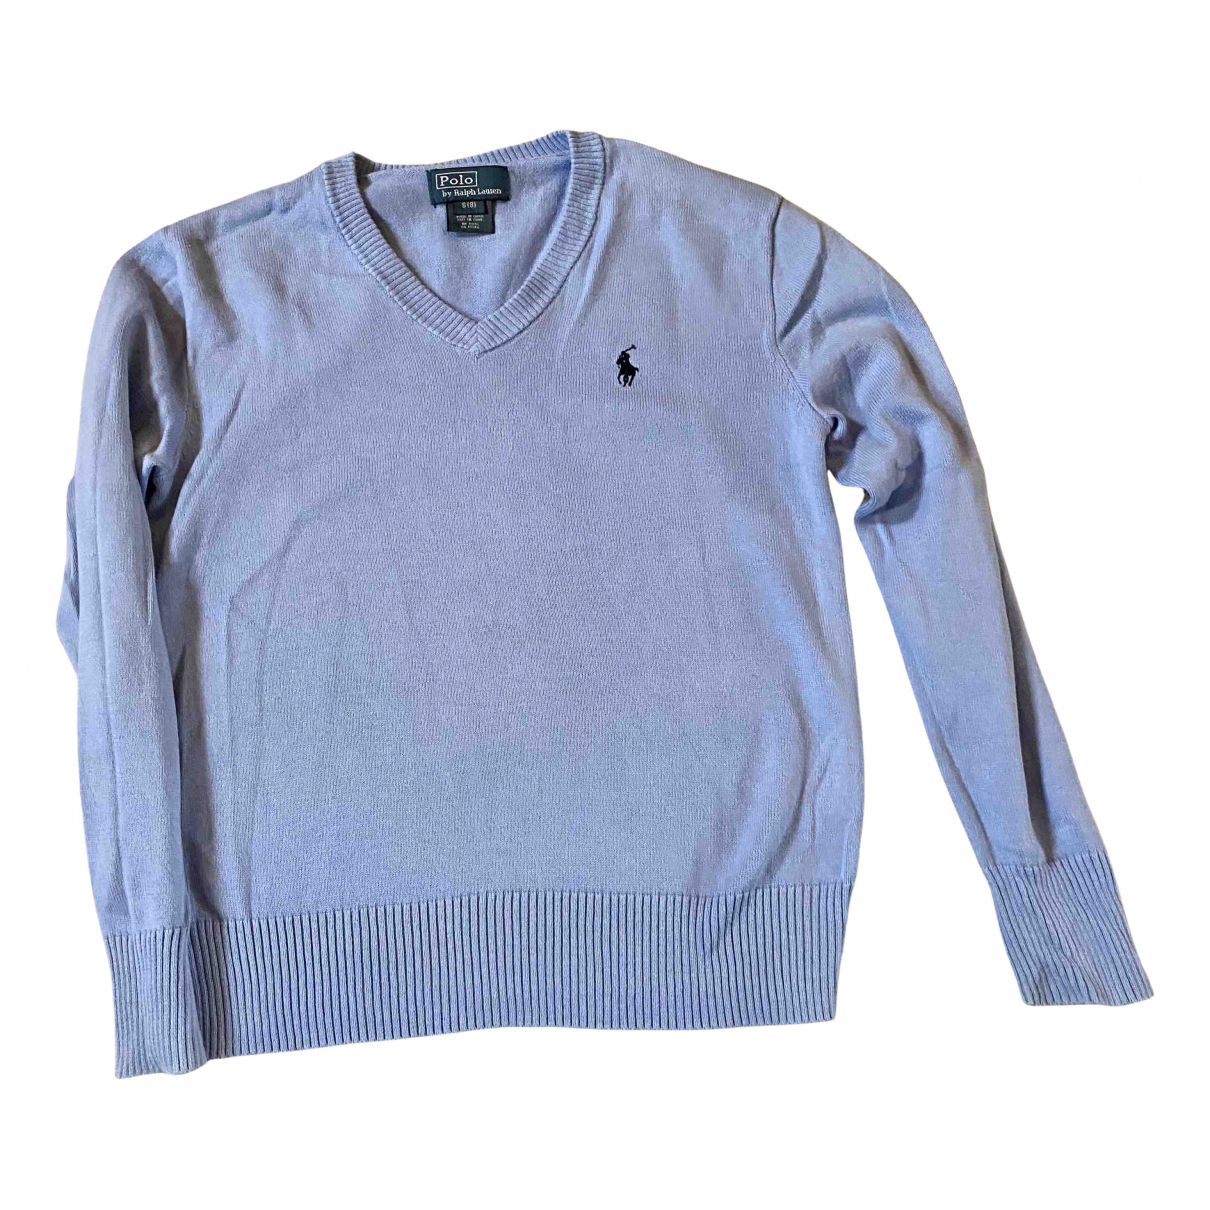 Polo Ralph Lauren N Blue Cotton Knitwear for Kids 8 years - up to 128cm FR